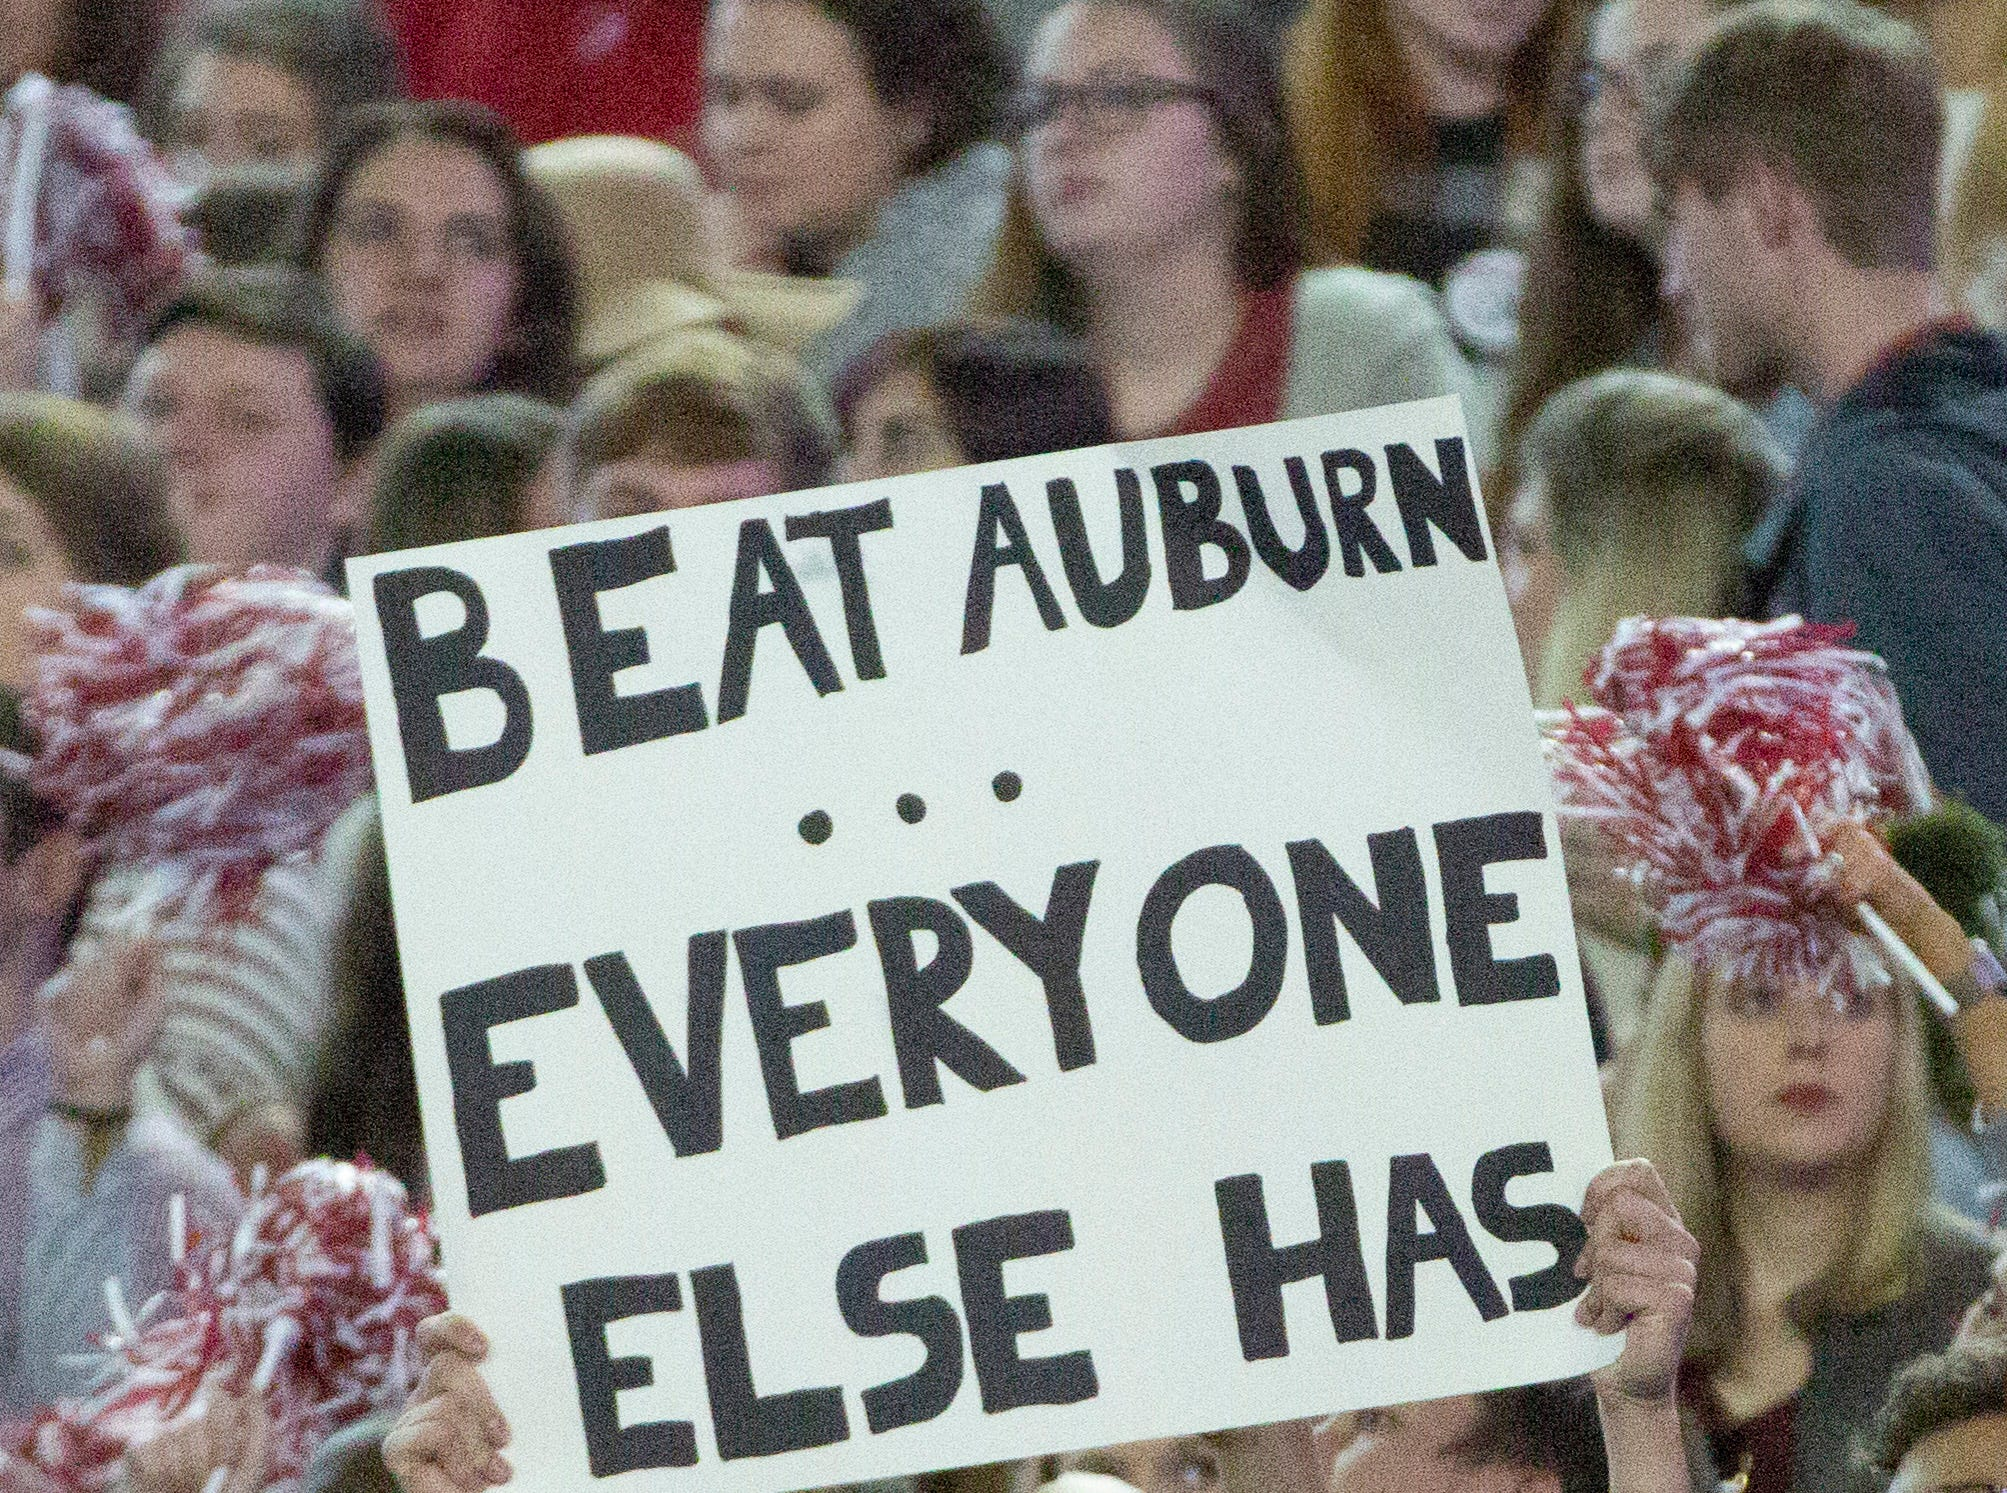 An Alabama fan in the student section.